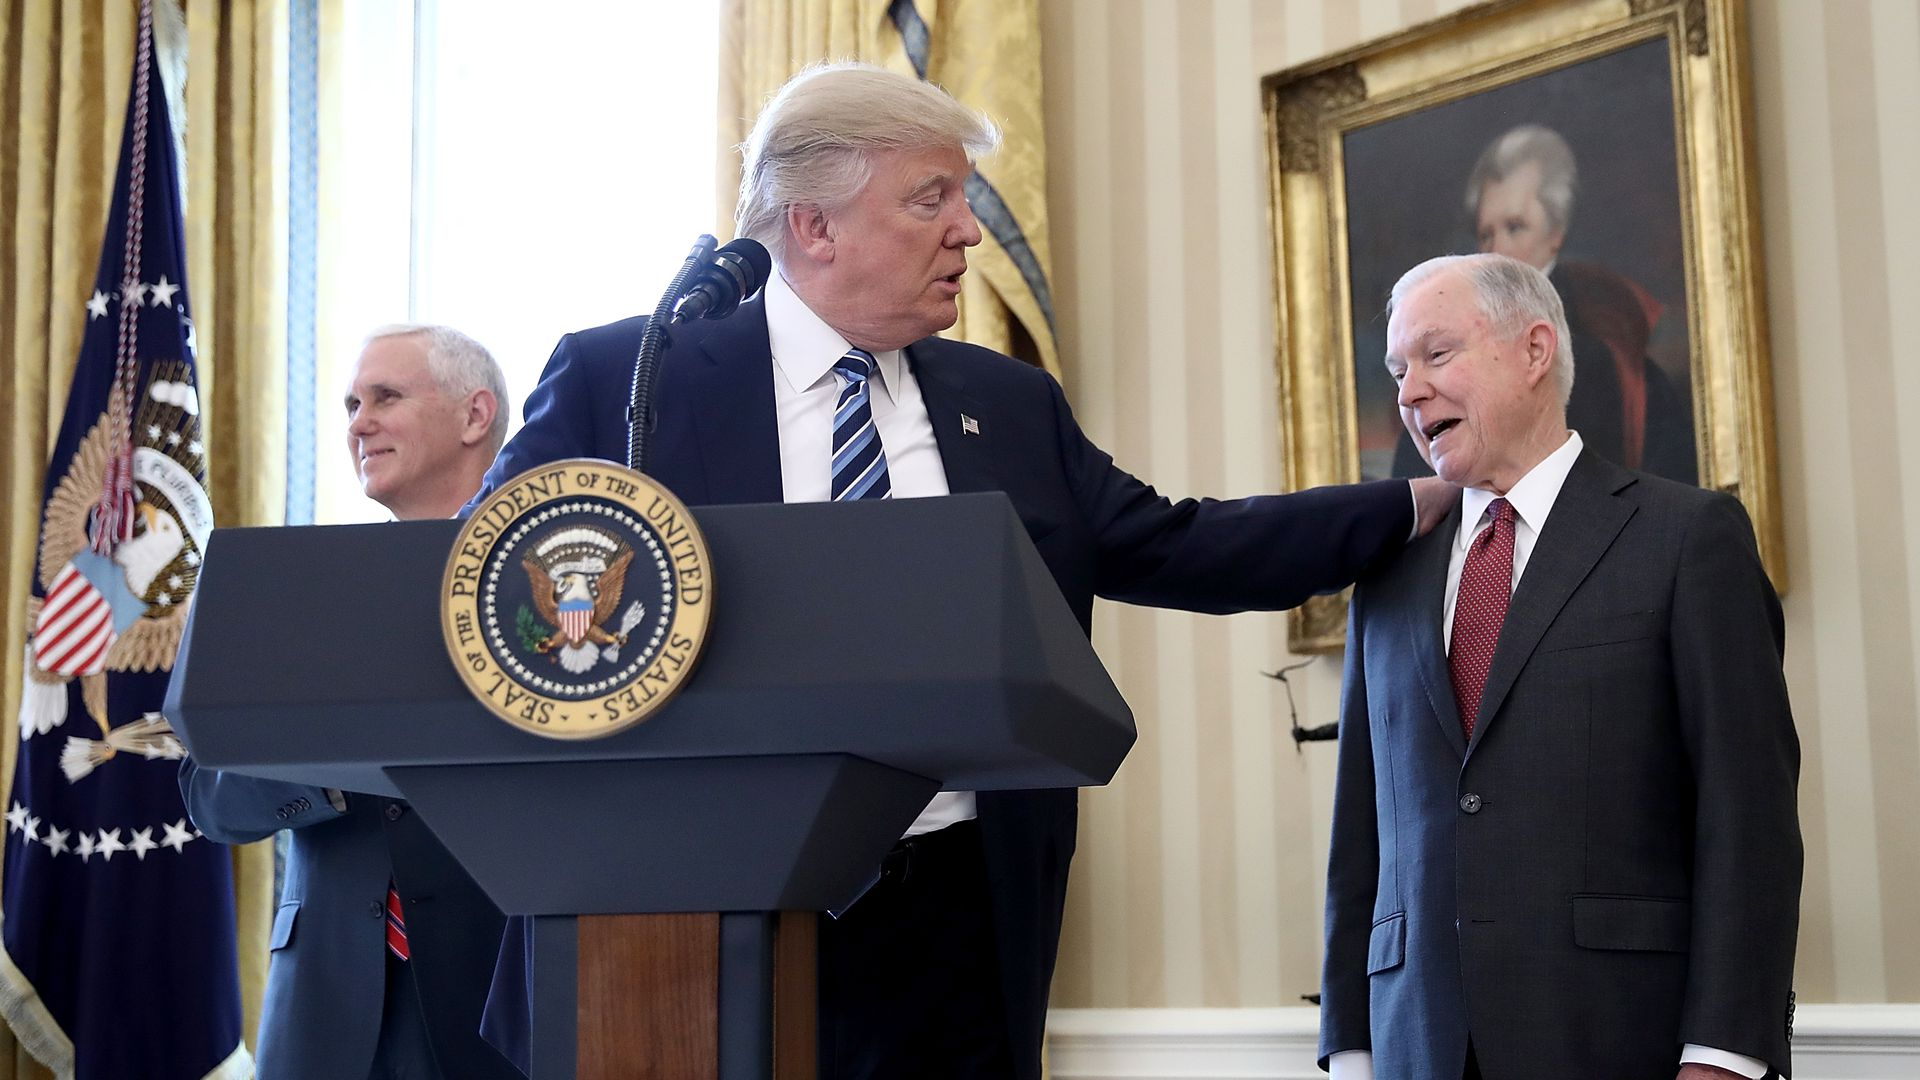 President Donald Trump and Jeff Sessions after before his swearing in ceremony last year. Photo: Win McNamee/Getty Images